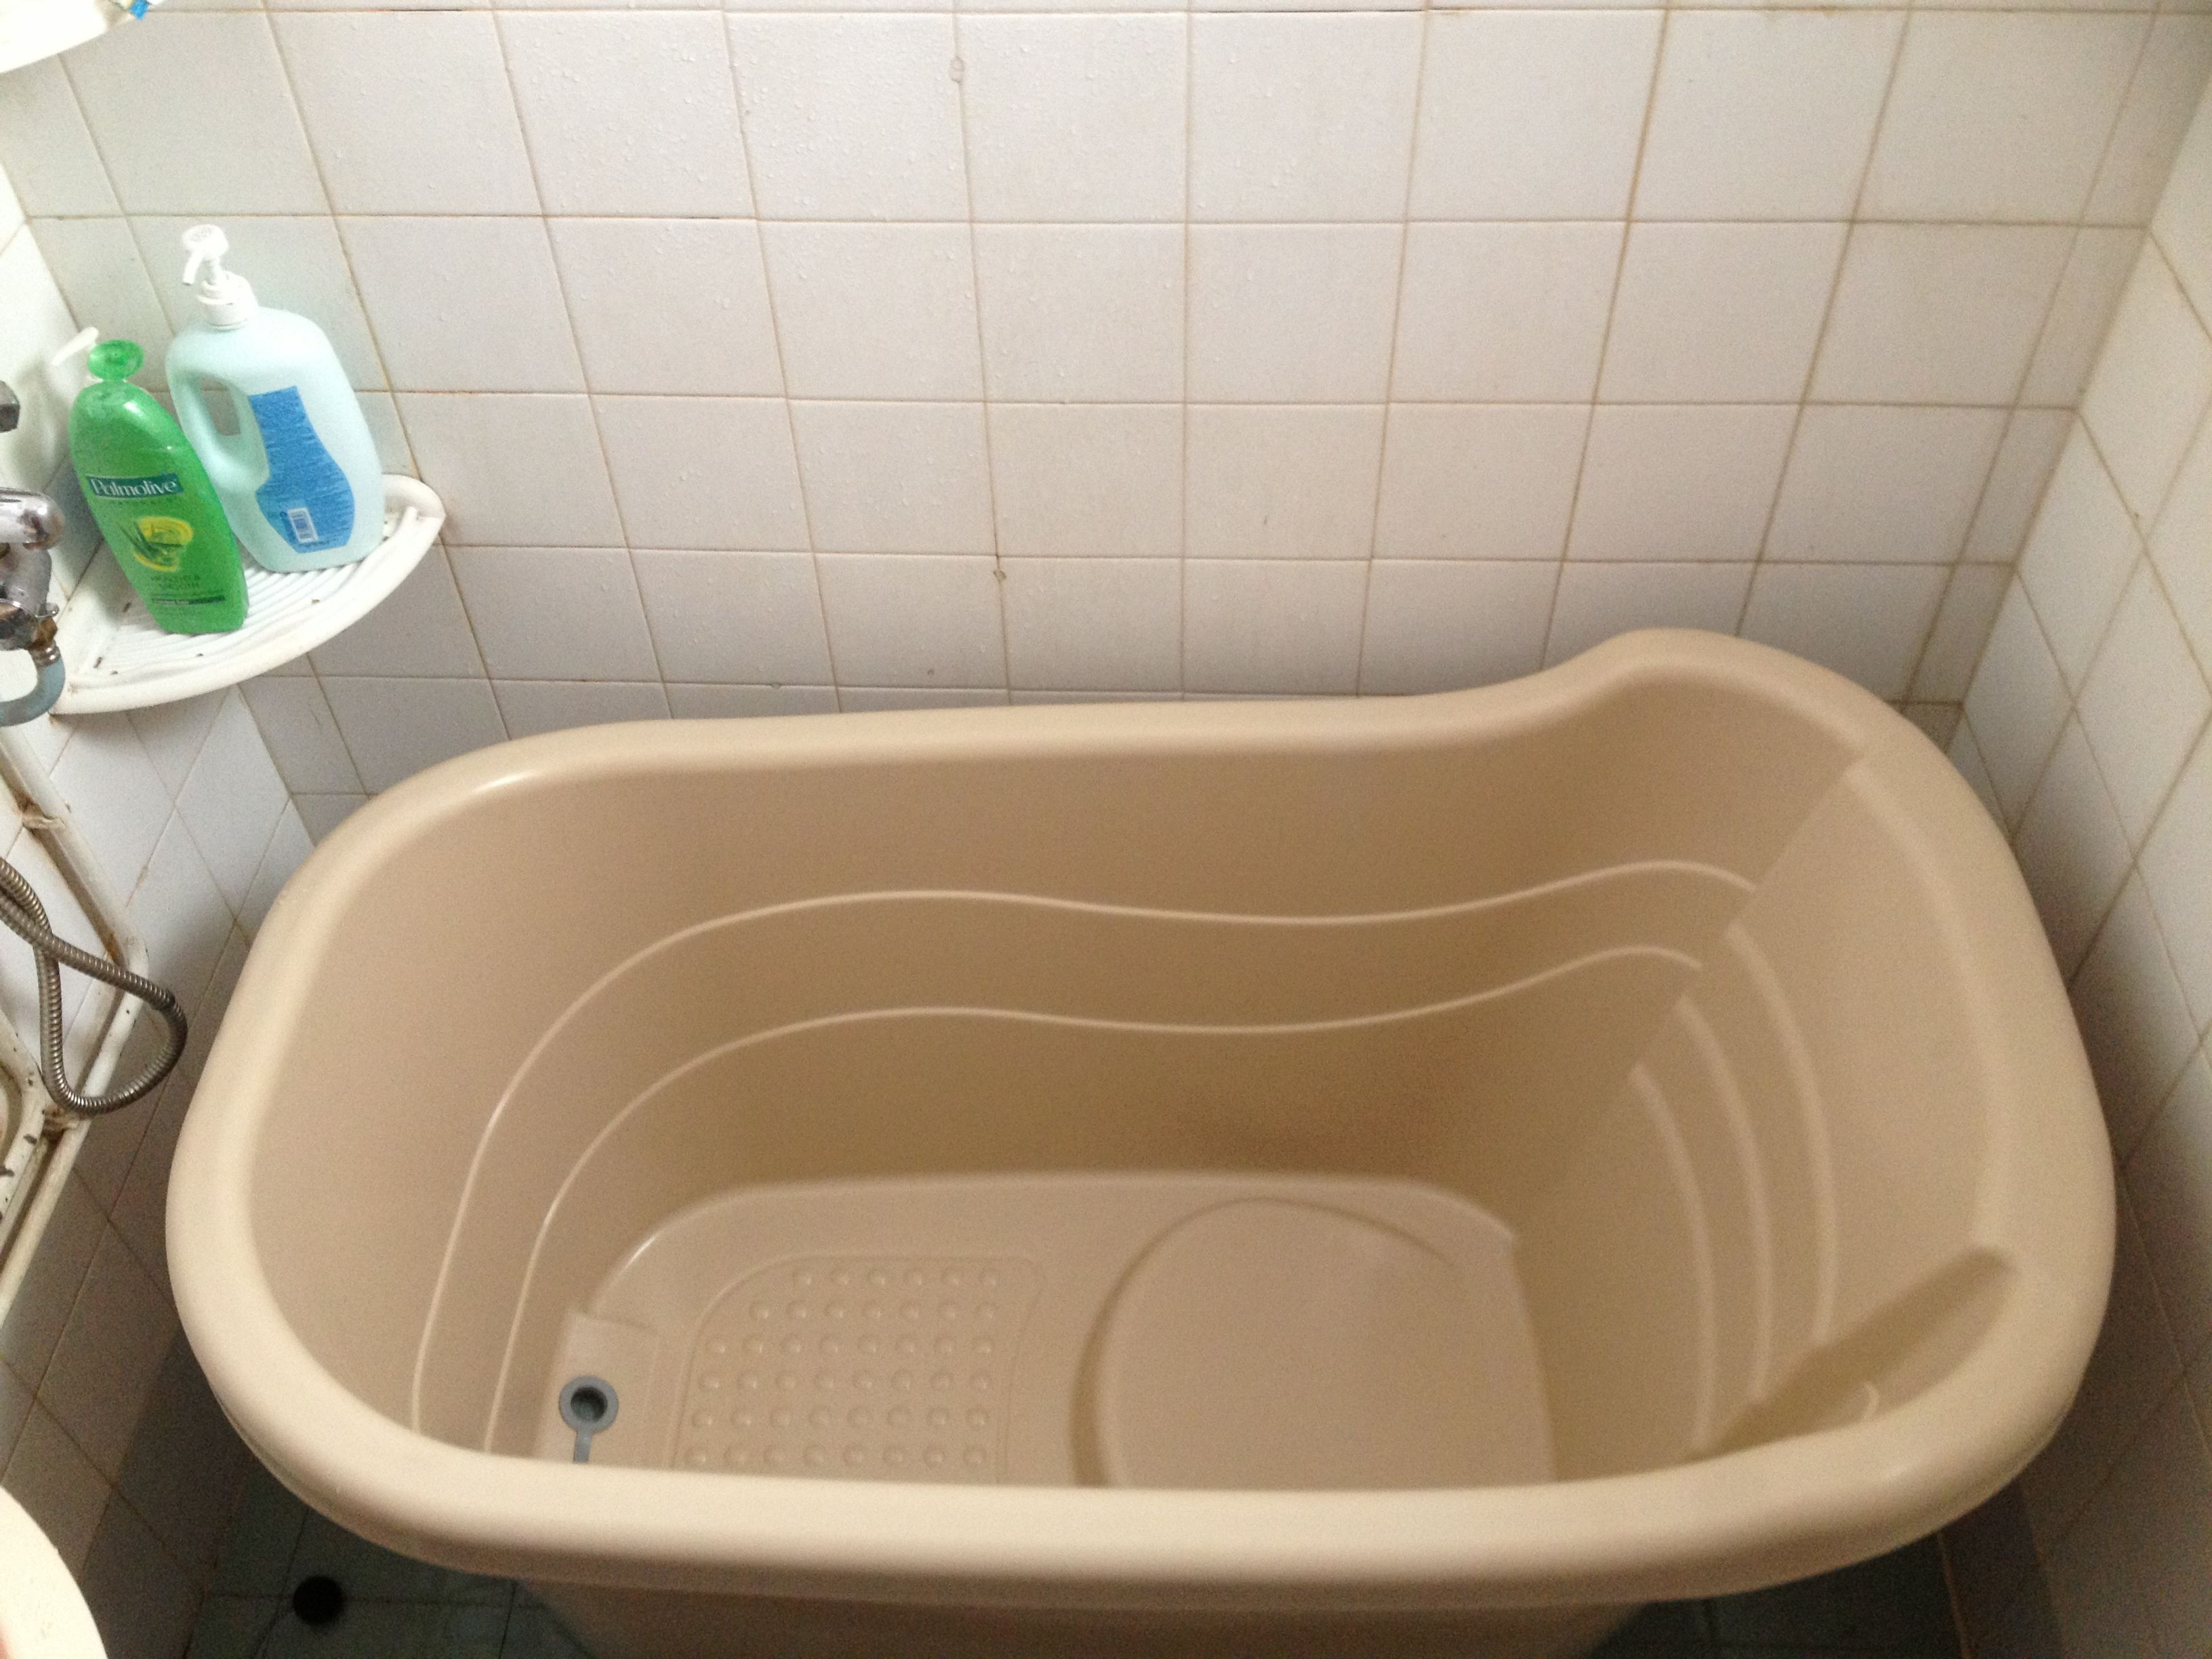 shower chair malaysia antique windsor chairs for sale portable tub in the small tiny home